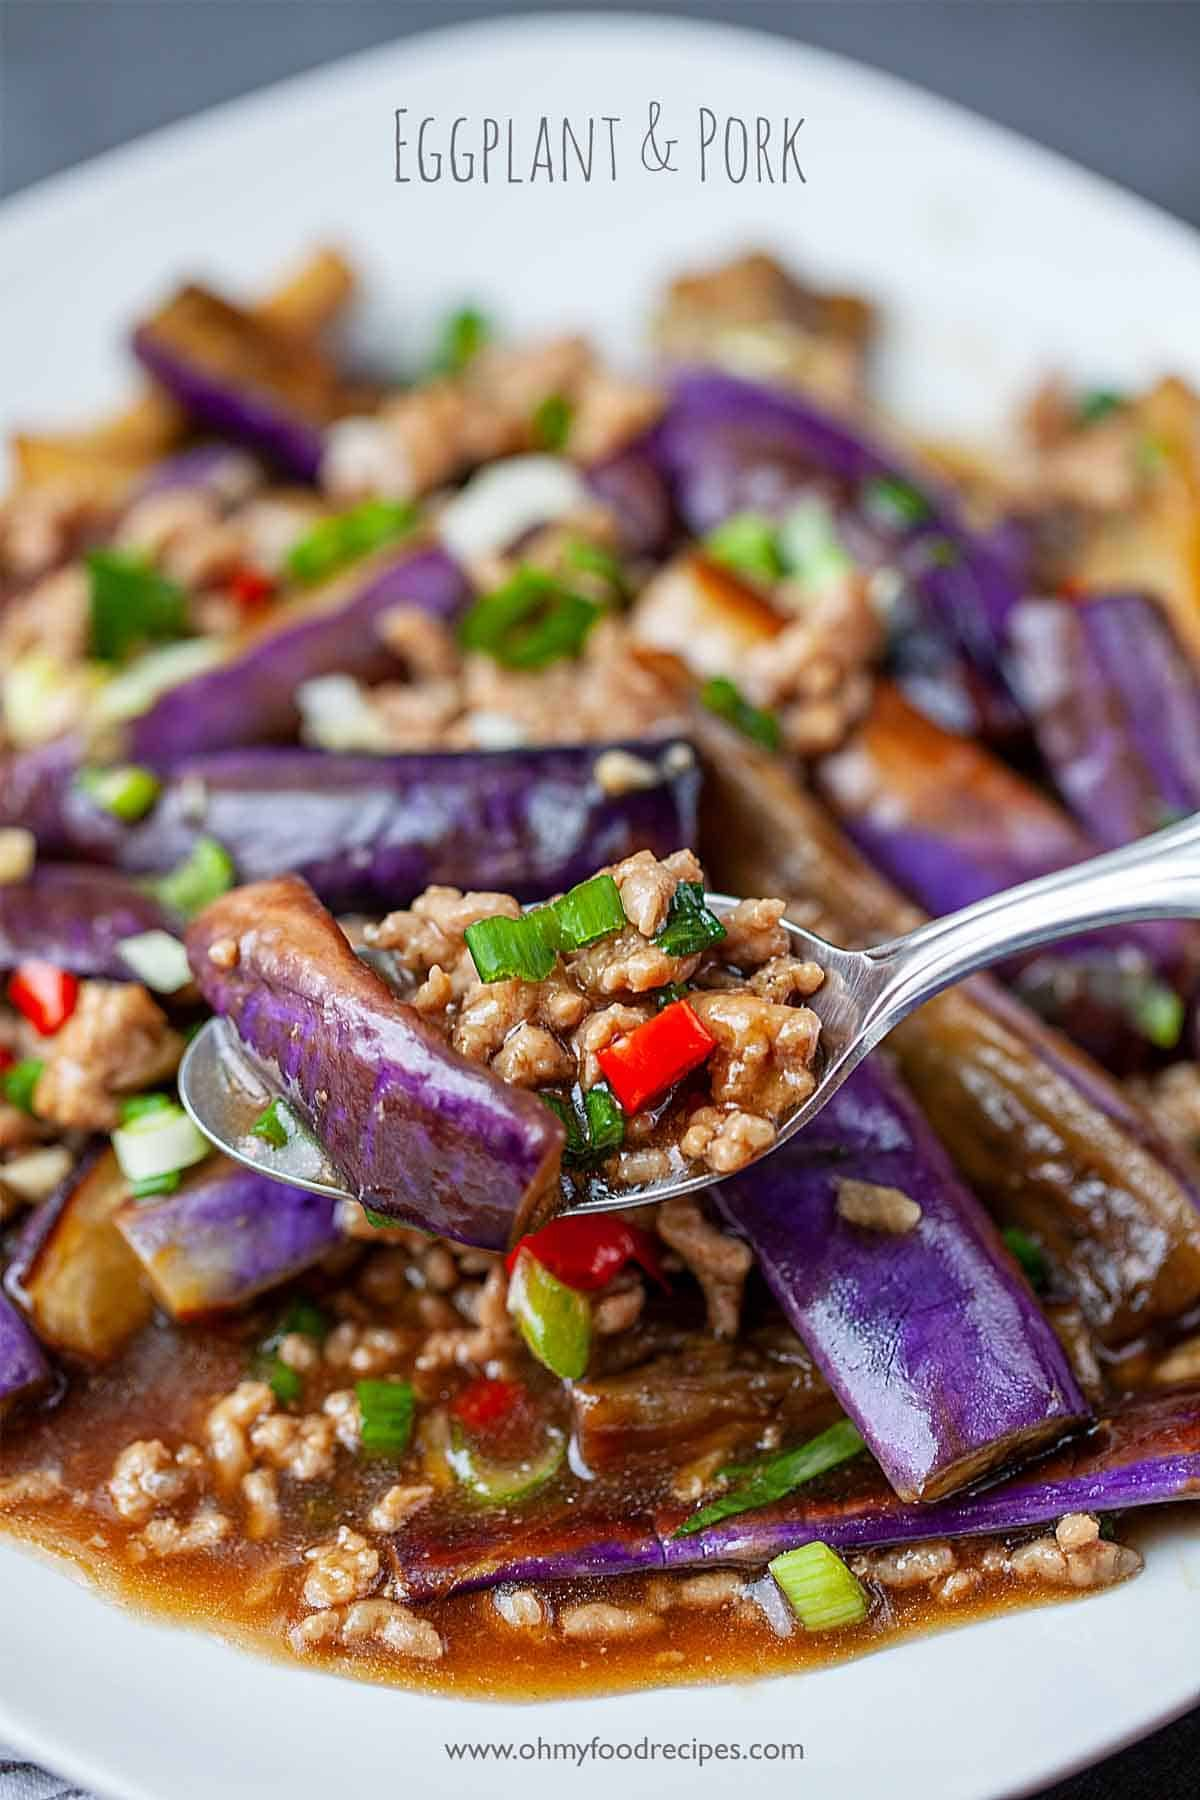 Chinese eggplant and pork | Recipe in 2020 | Ground pork recipes. Chinese eggplant. Authentic asian recipes